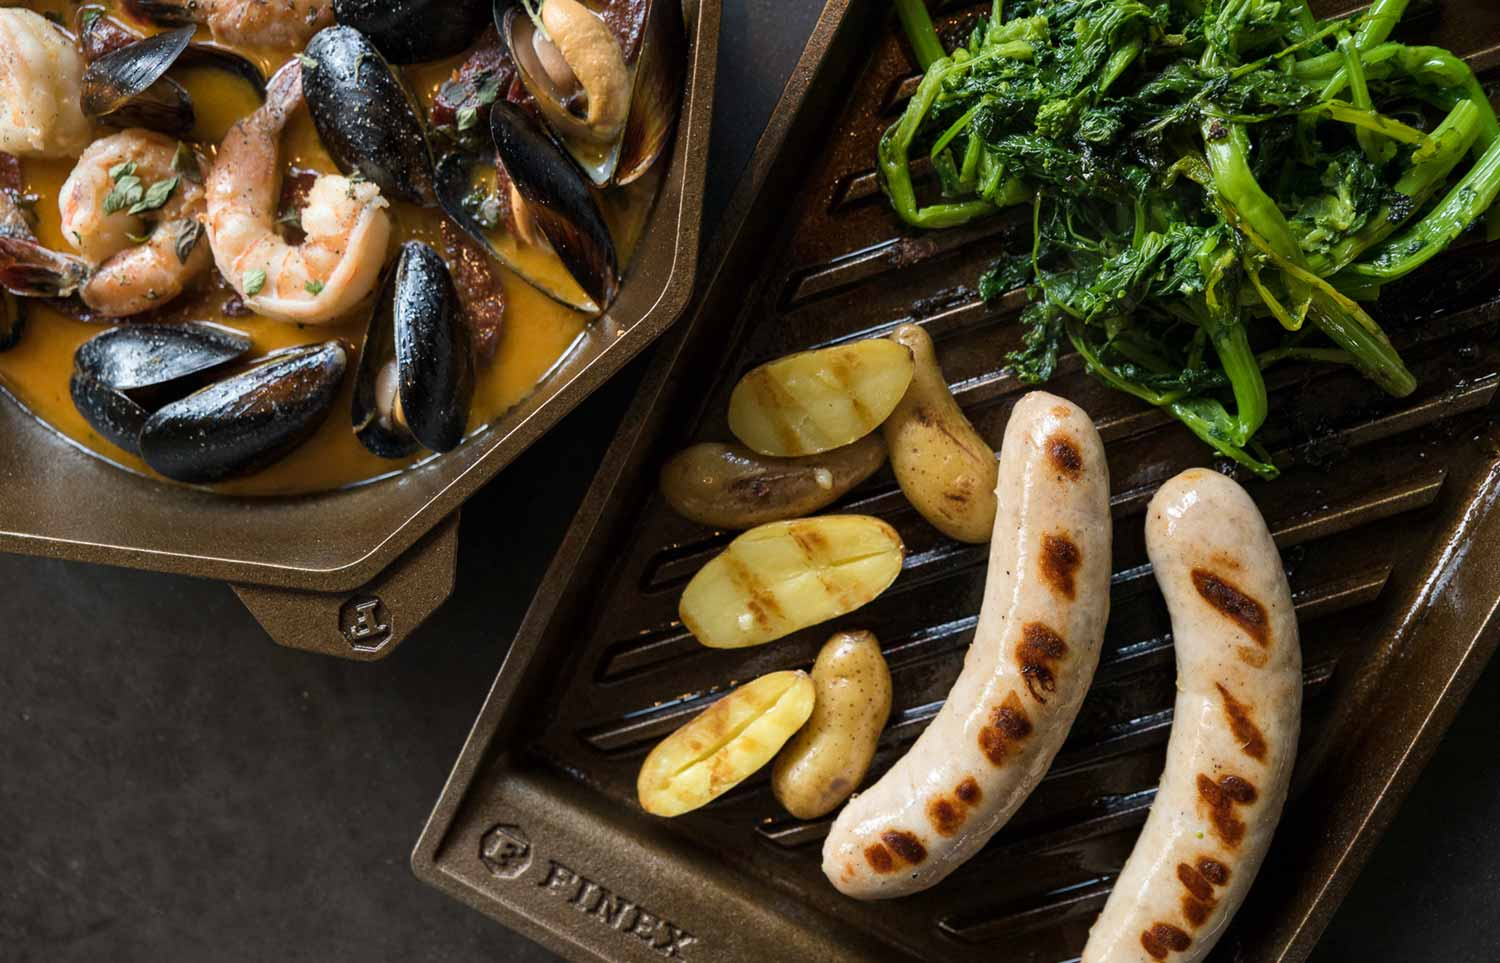 Grill pan bratwurst with rapini, fingerling potatoes, and grain mustard sauce